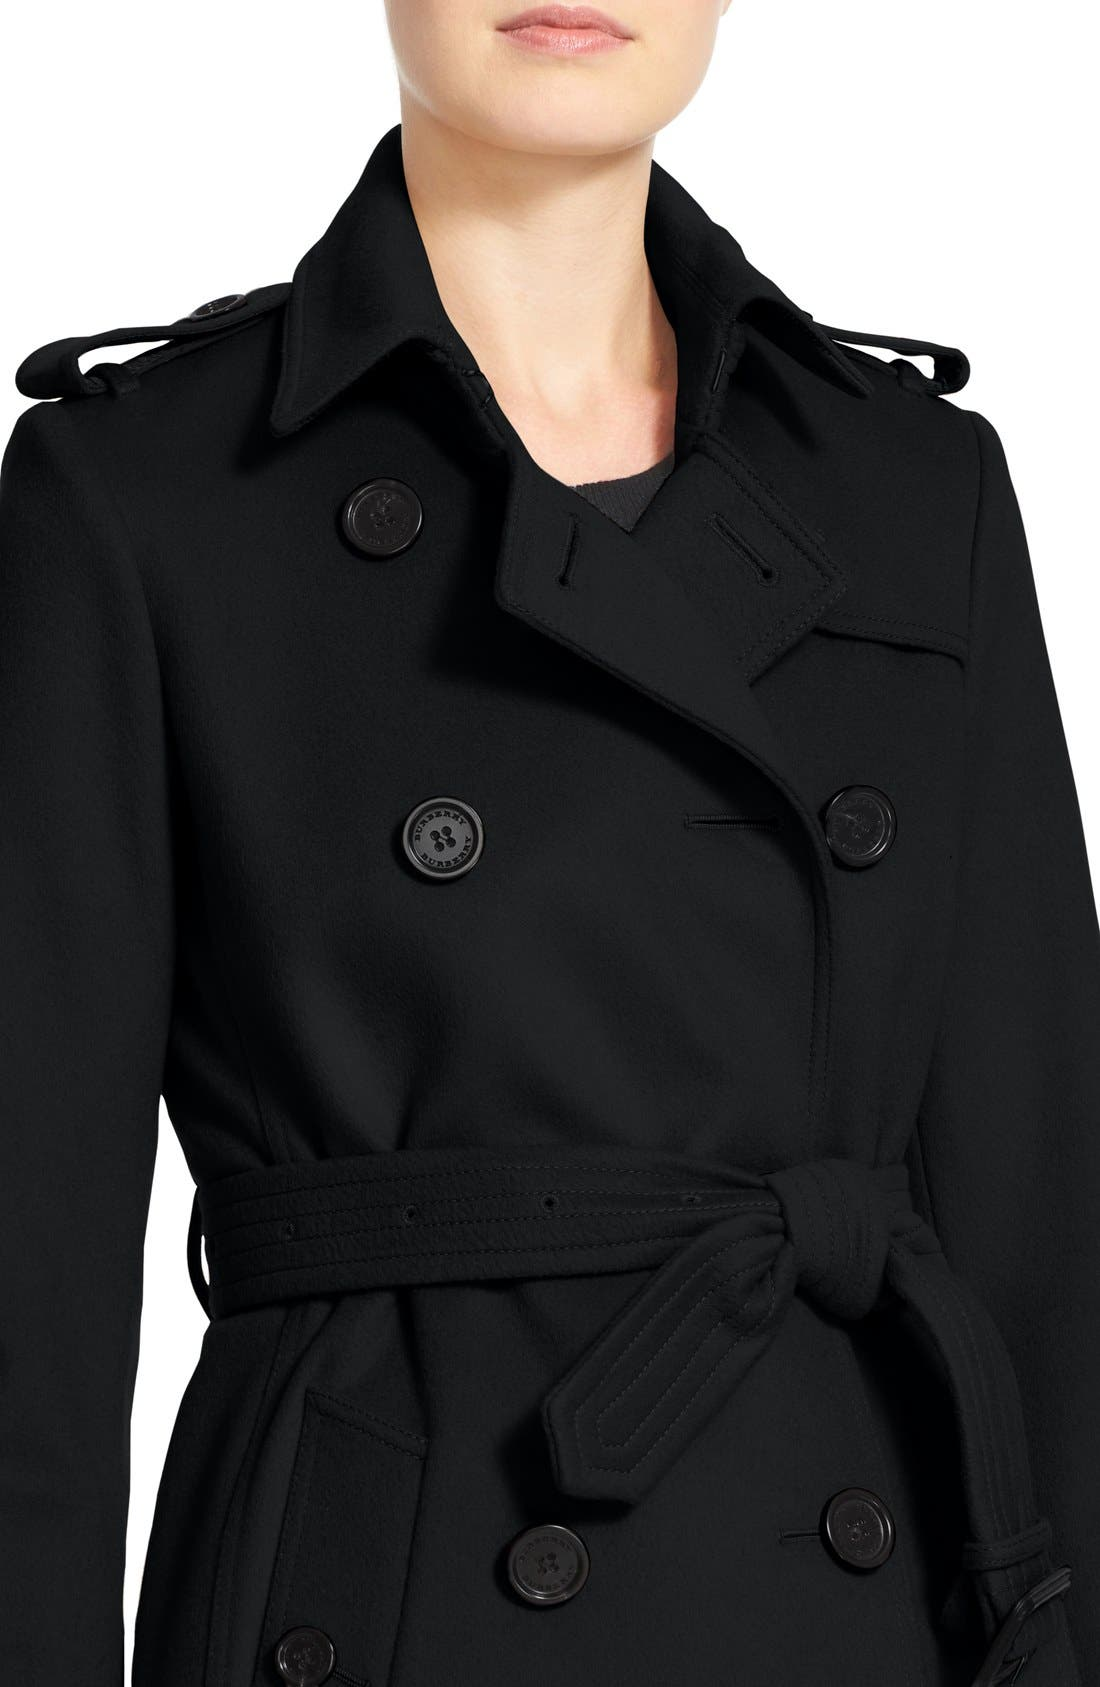 Kensington Double Breasted Wool & Cashmere Trench Coat,                             Alternate thumbnail 6, color,                             001